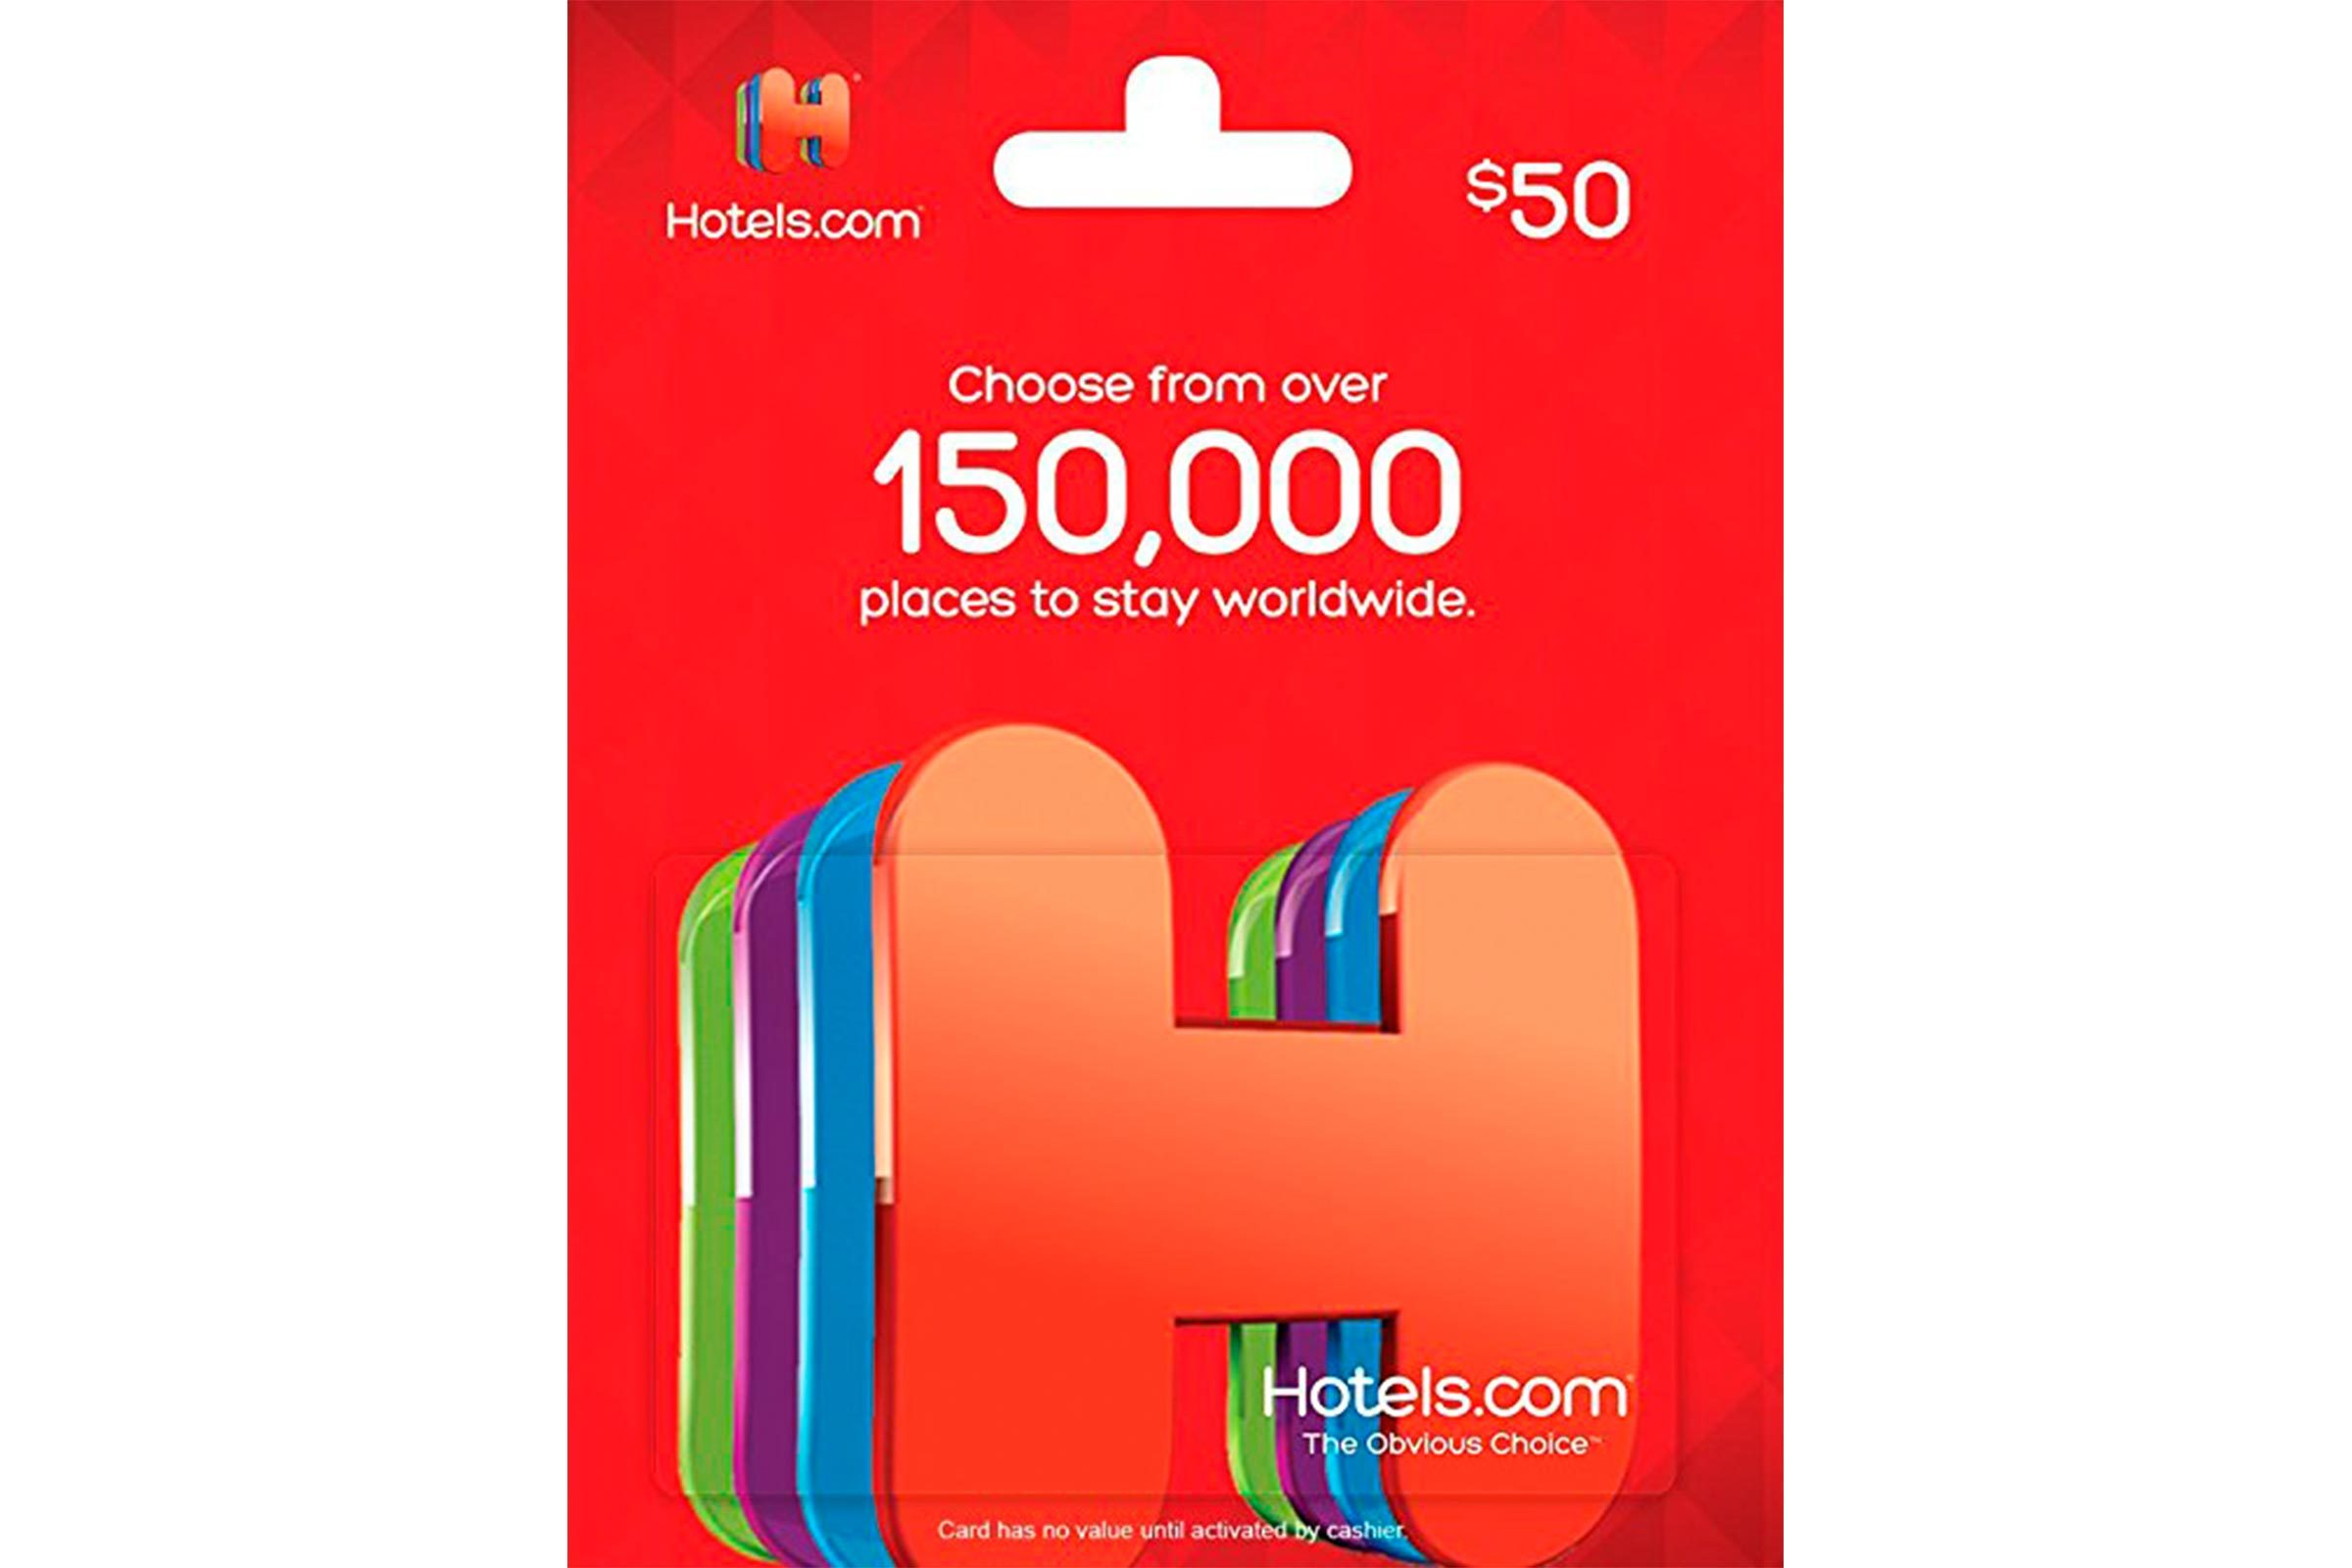 e42ad8dadd82 Gift Cards People Actually Want for the Holidays